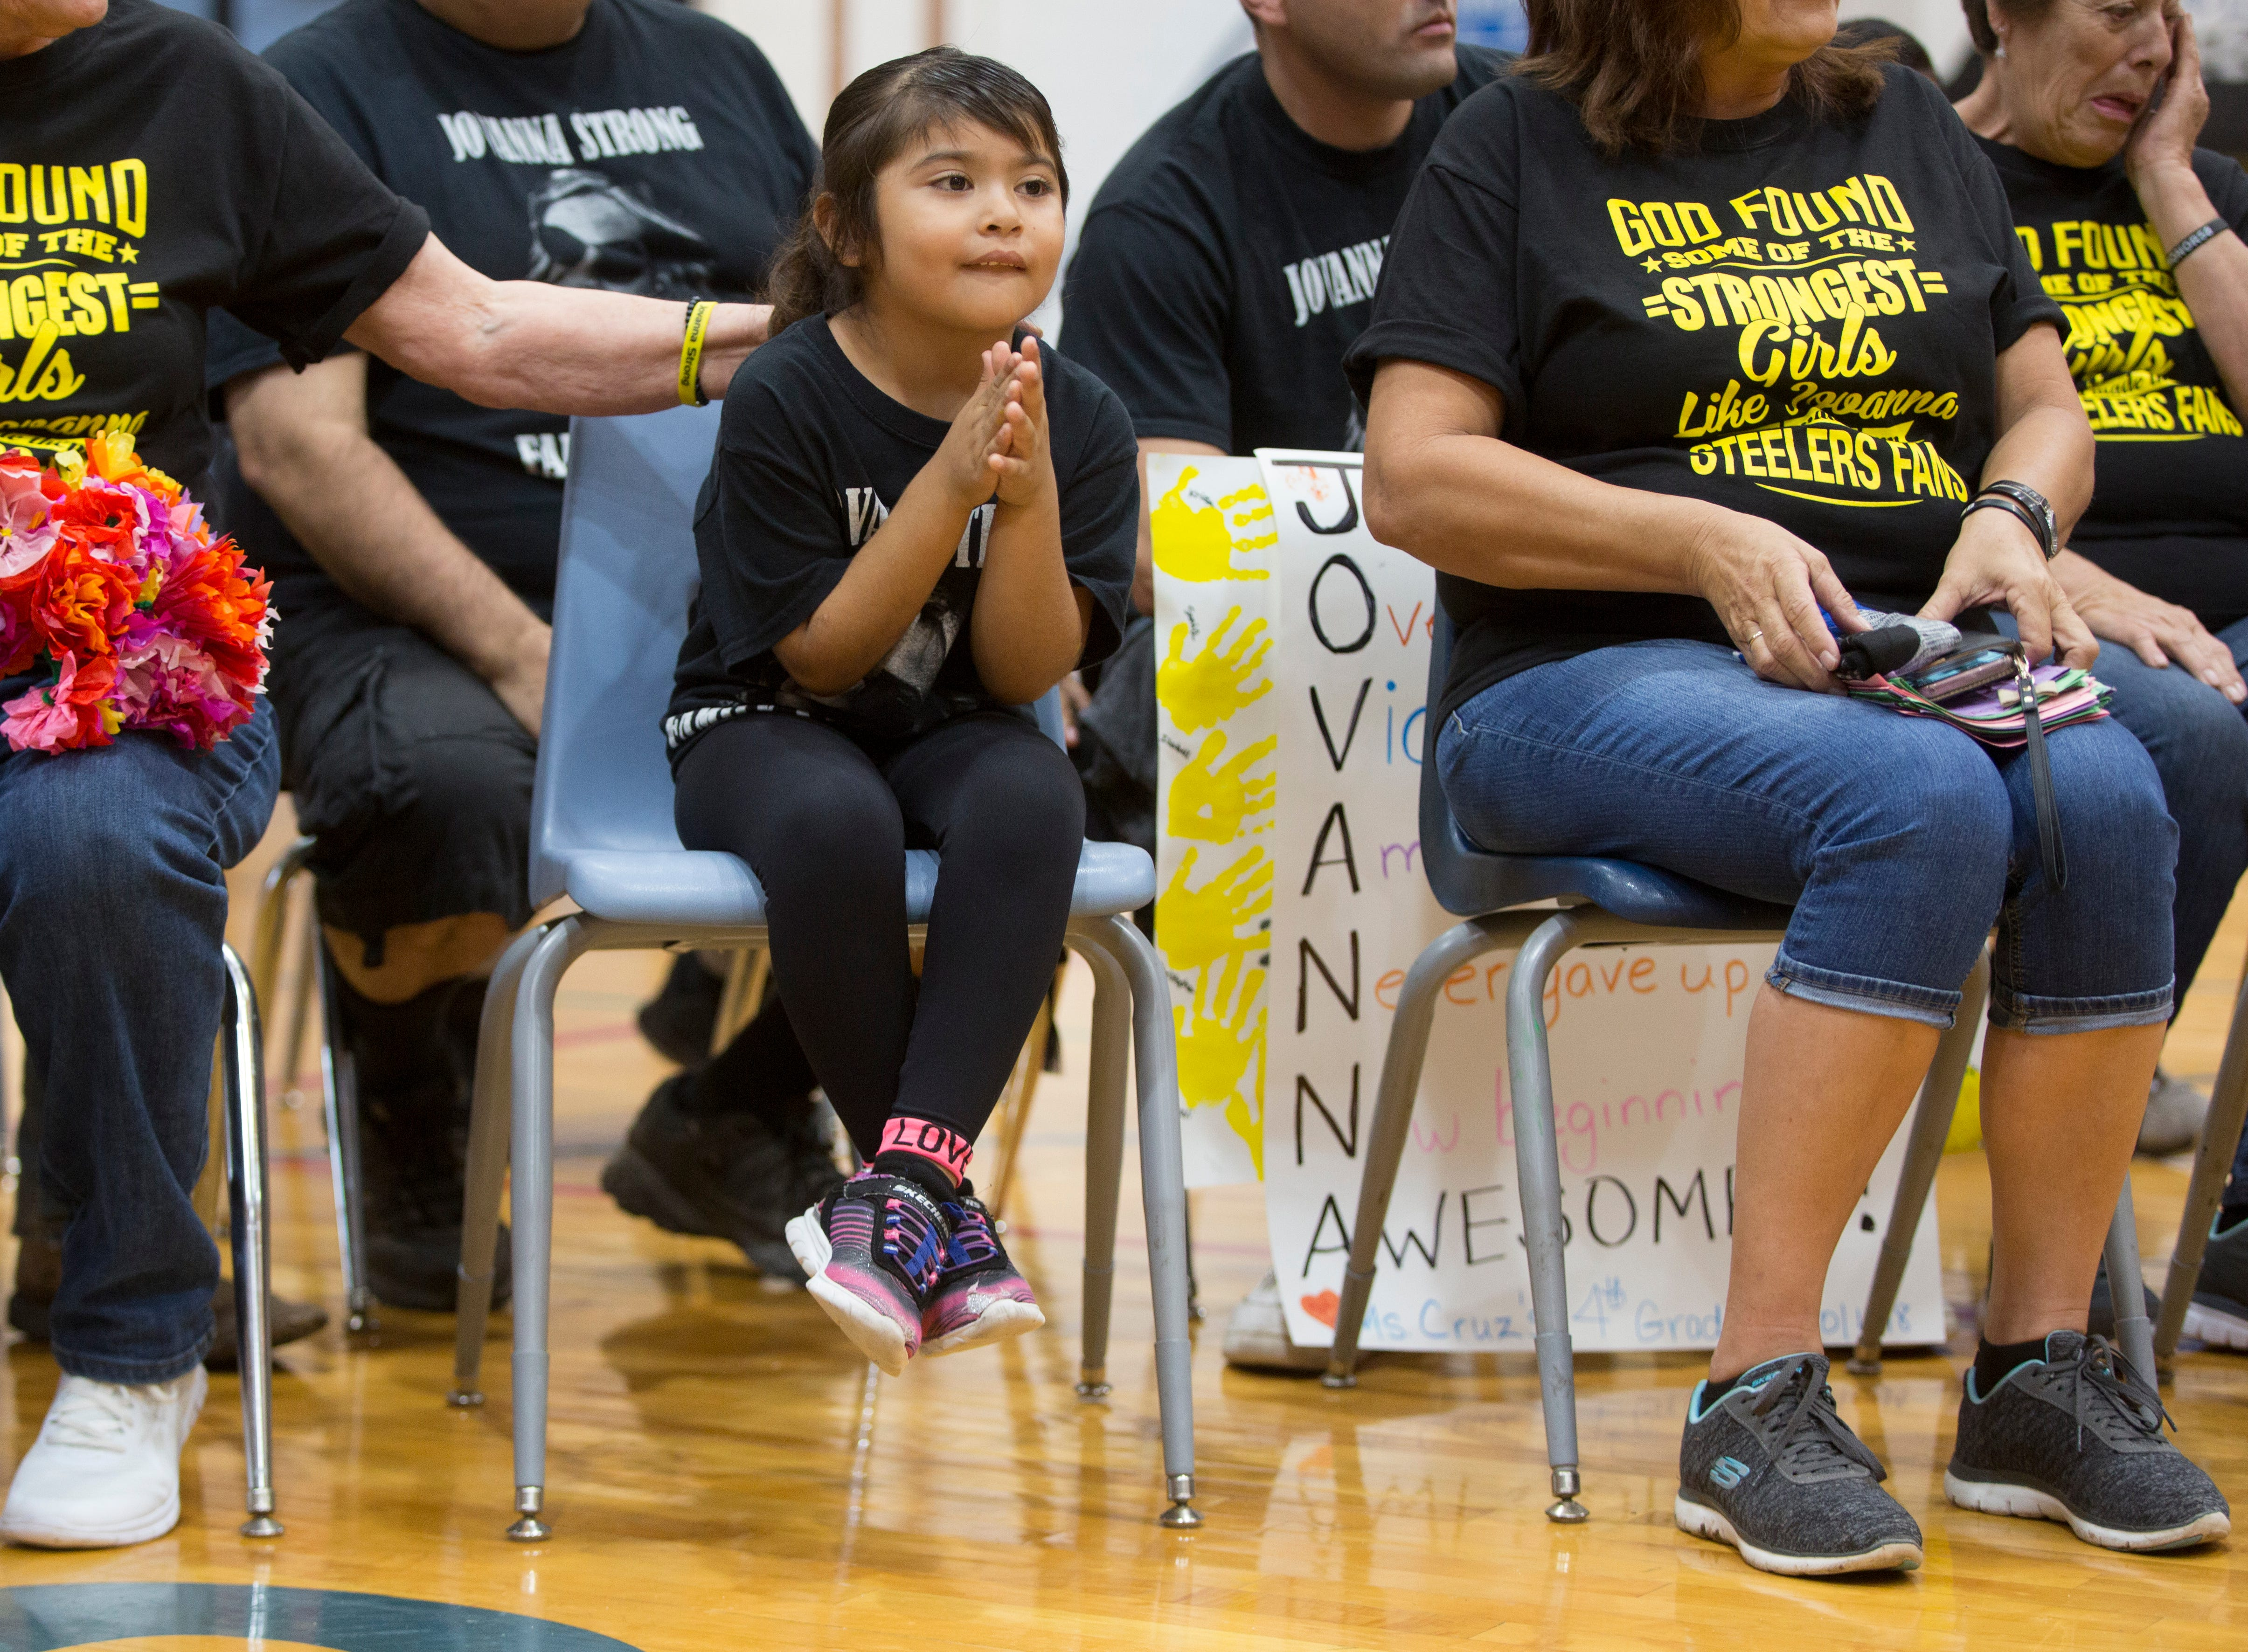 Yarili Aguro, 4, claps during an assembly for her cousin Jovanna Calzadillas who was severely wounded during a mass shooting at the Route 91 Harvest Festival in Las Vegas. The Calzadillas family spent the day with friends and family in Winkleman.